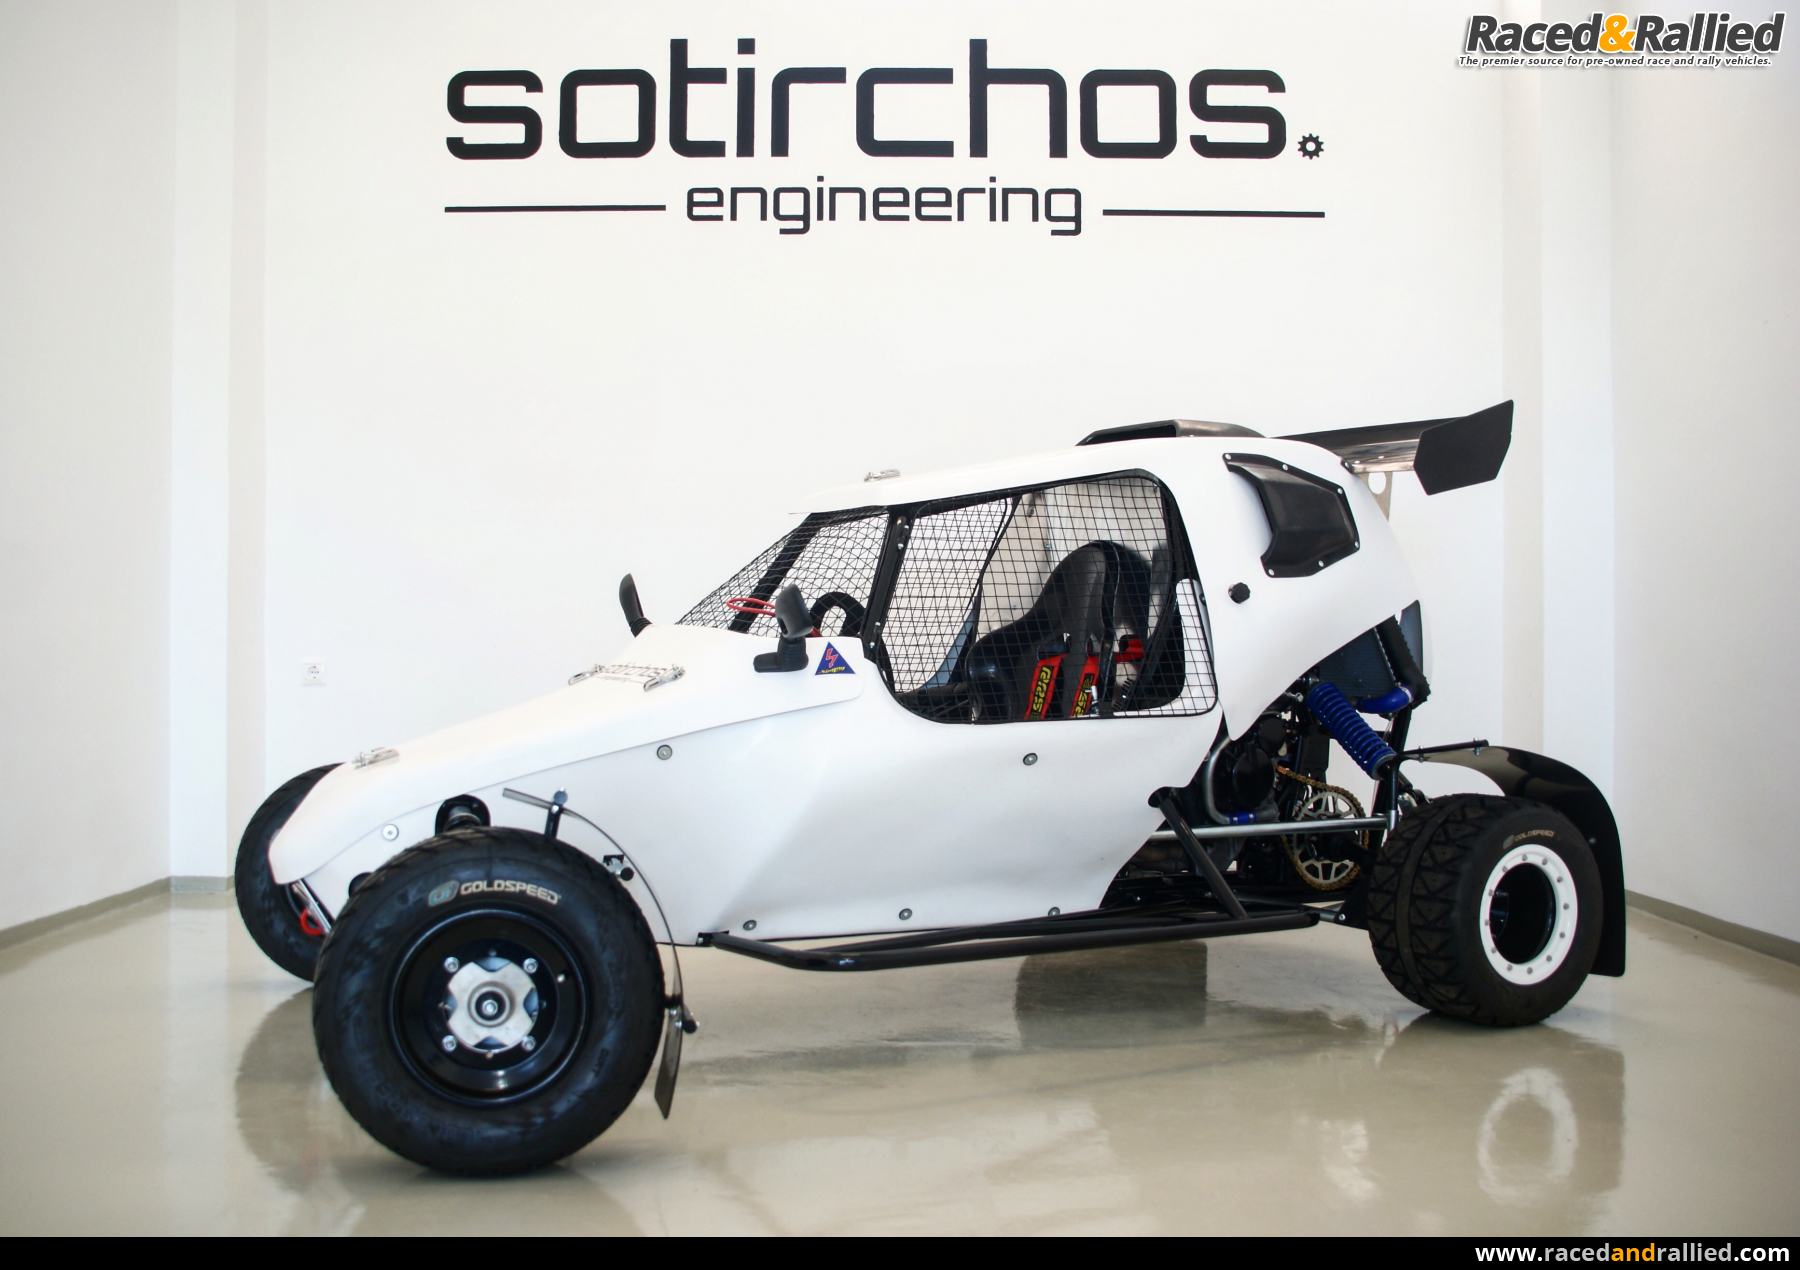 Car Brake Parts >> Kartcross - Sotirchos Engineering | Bike engined kit cars for sale at Raced & Rallied | rally ...